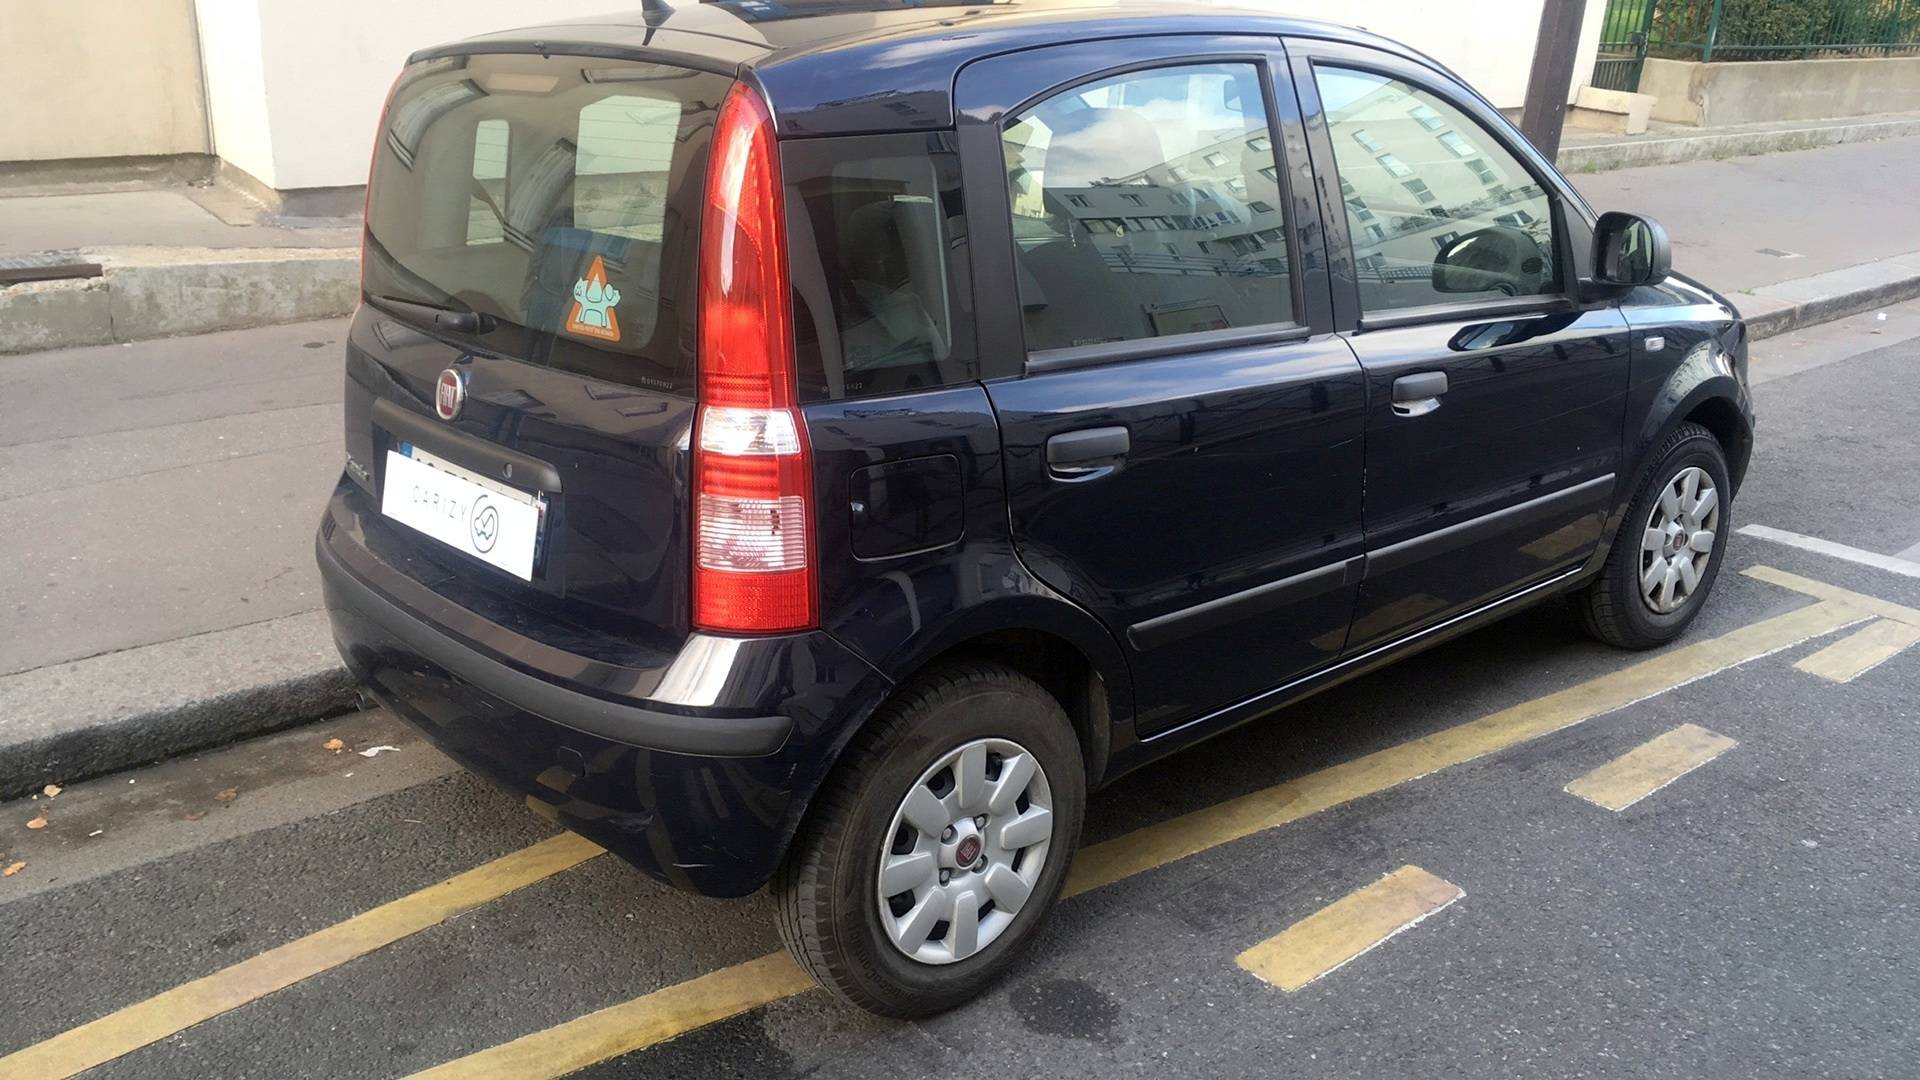 fiat panda d u0026 39 occasion 1 2 60 dynamic paris